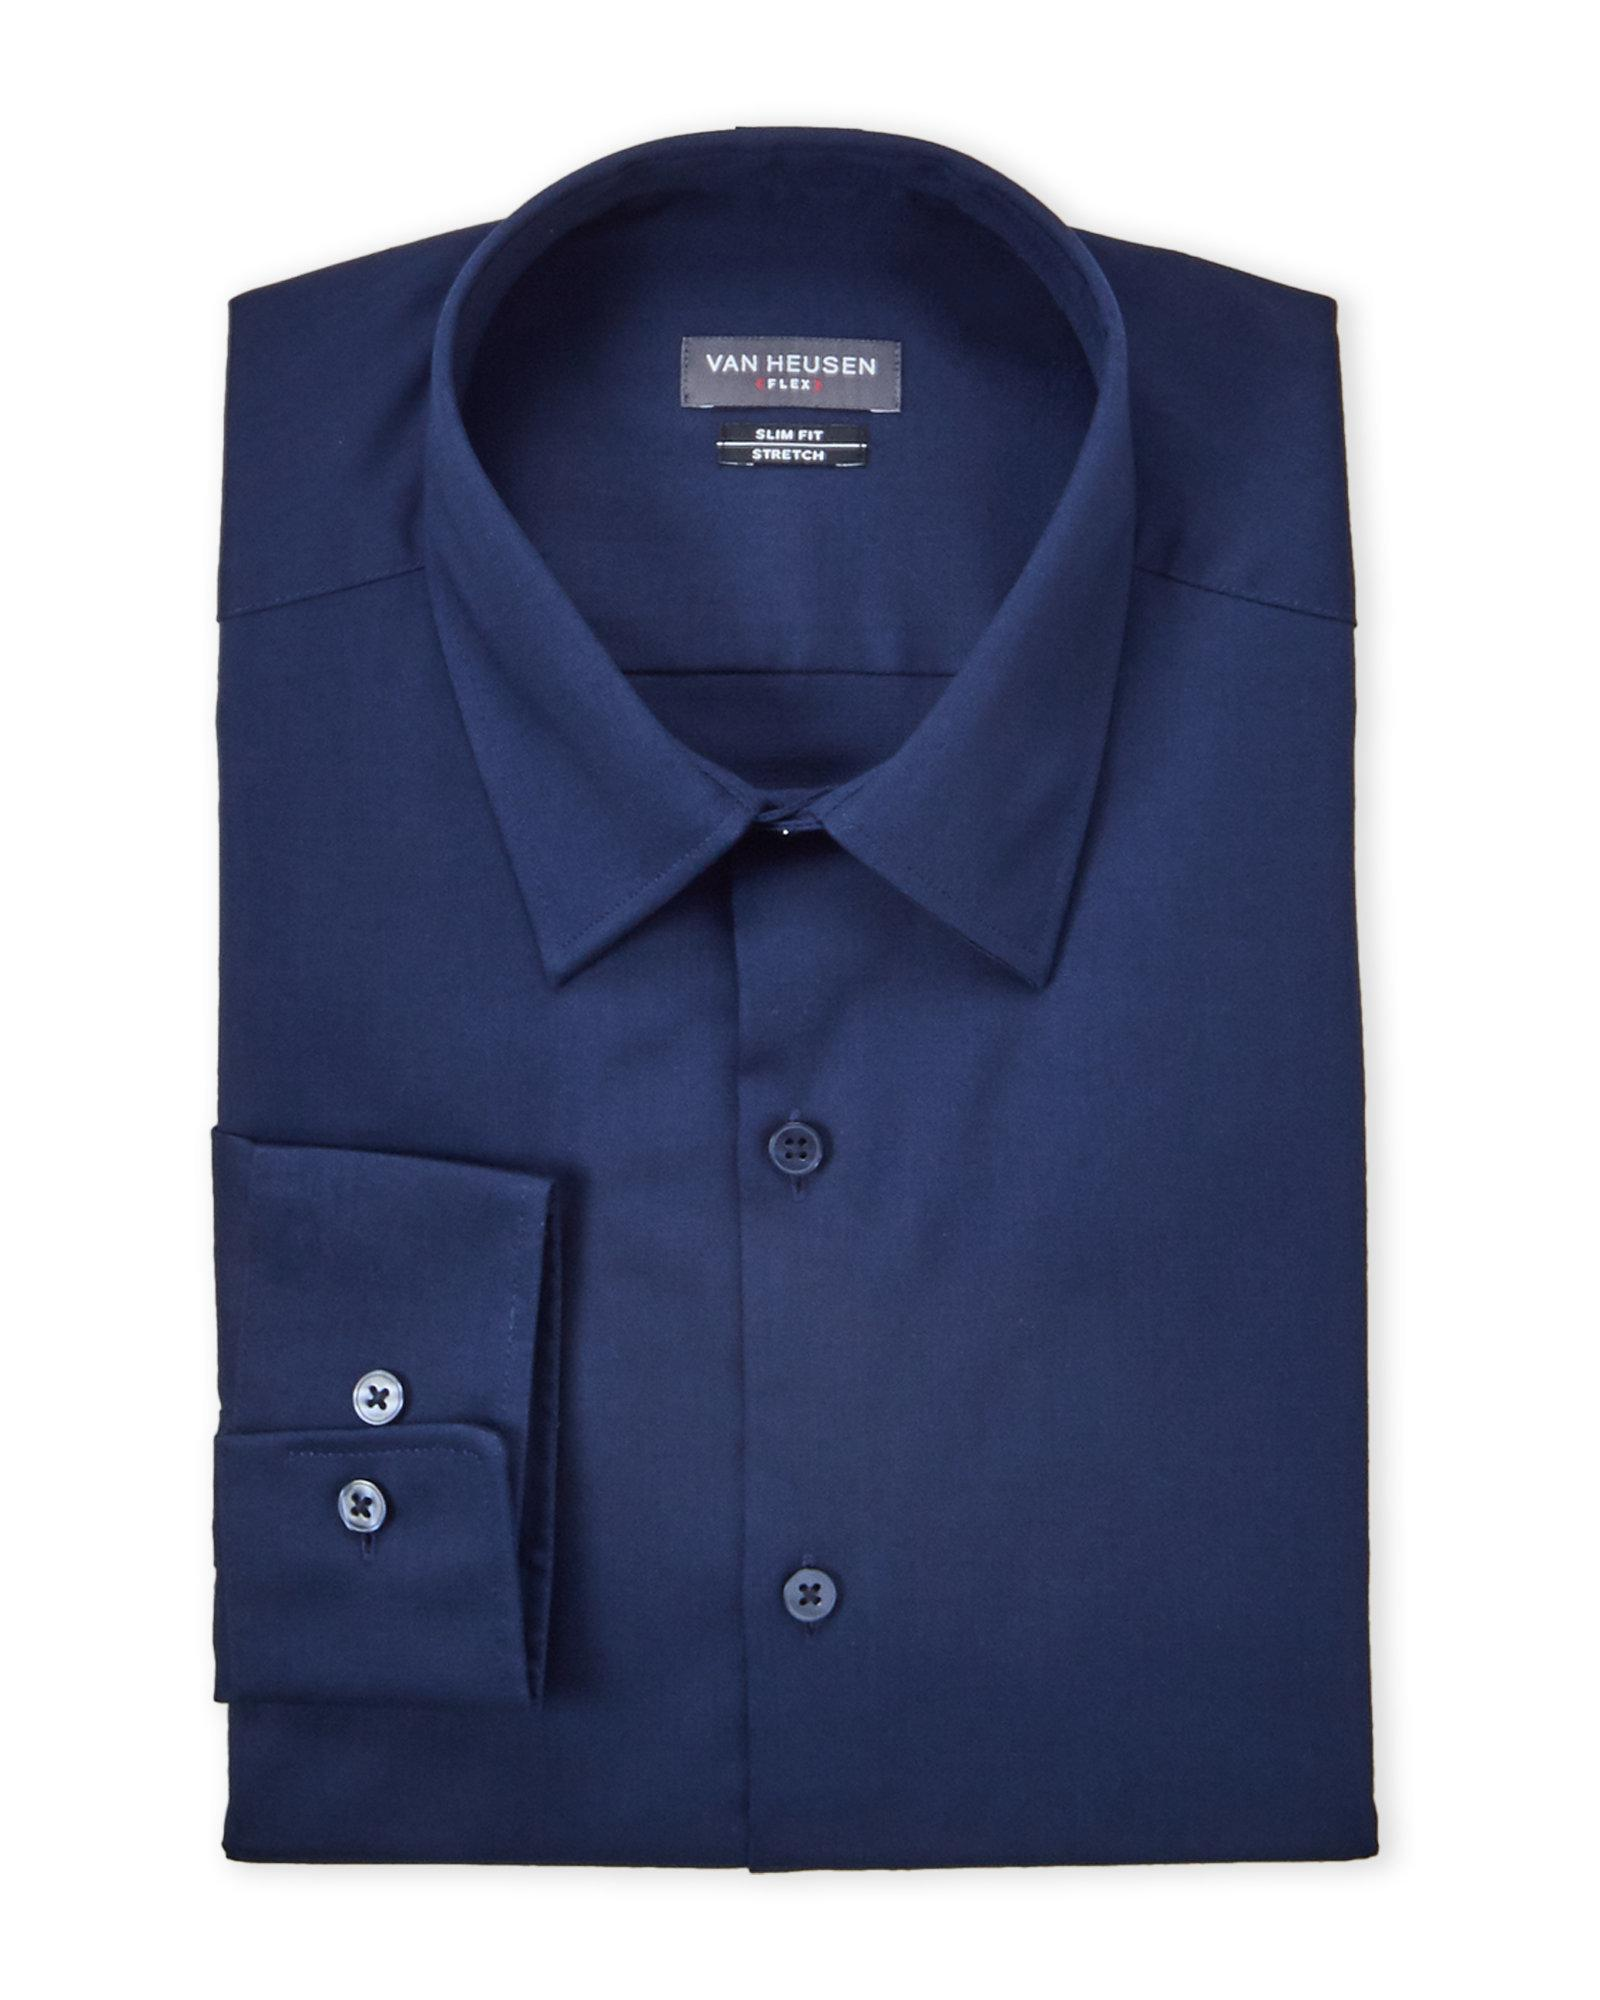 Lyst Van Heusen Night Blue Stretch Slim Fit Dress Shirt In Blue